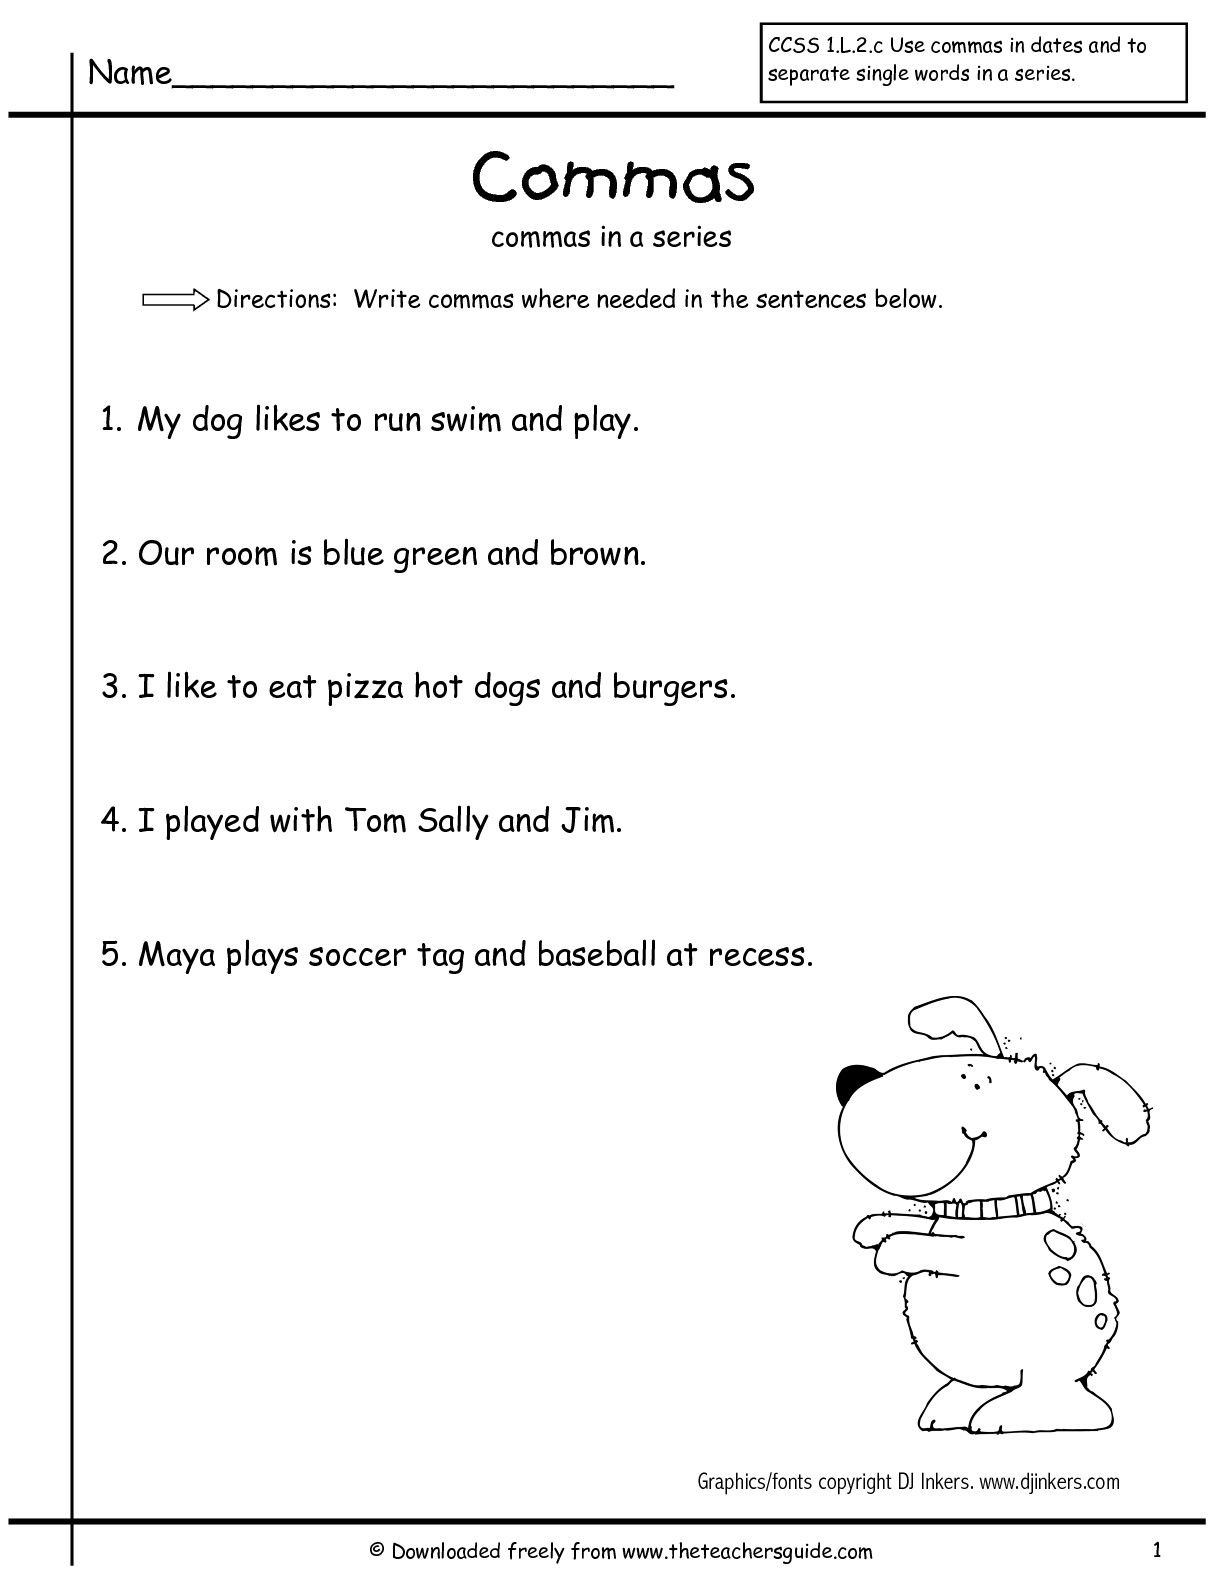 Worksheets Commas Worksheets commas in a series grammar pinterest worksheets punctuation series